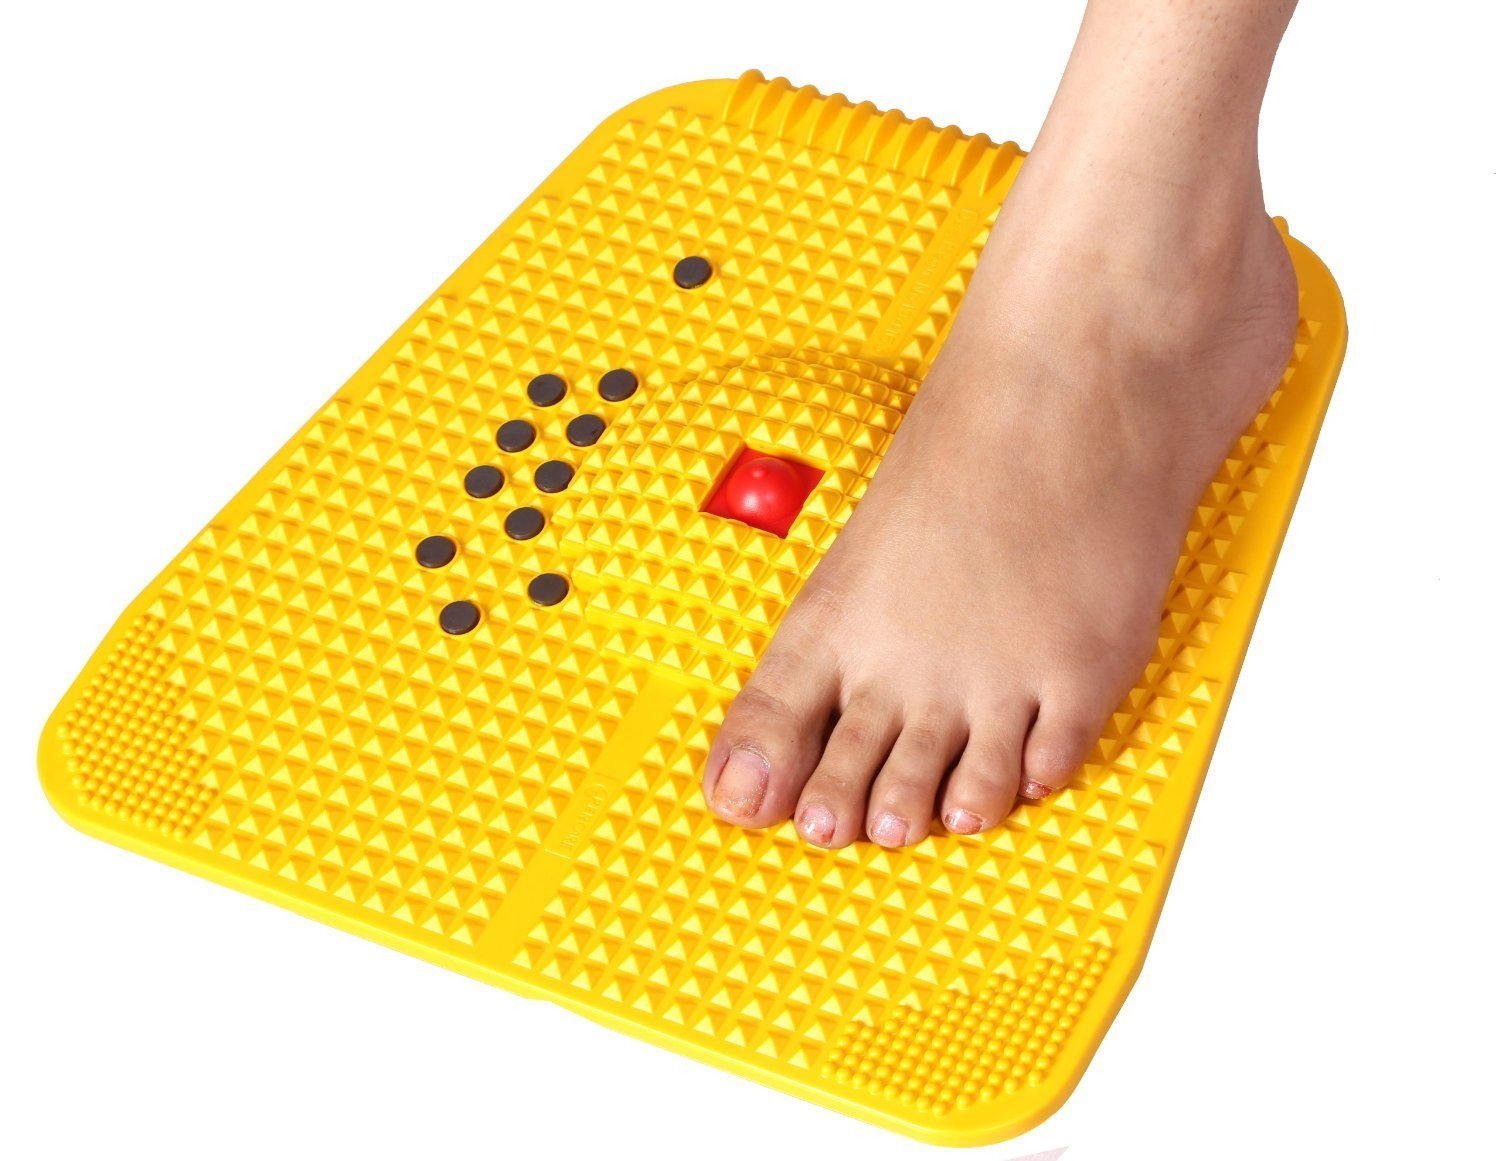 Acupressure Mat With Magnets Pyramids Healthions